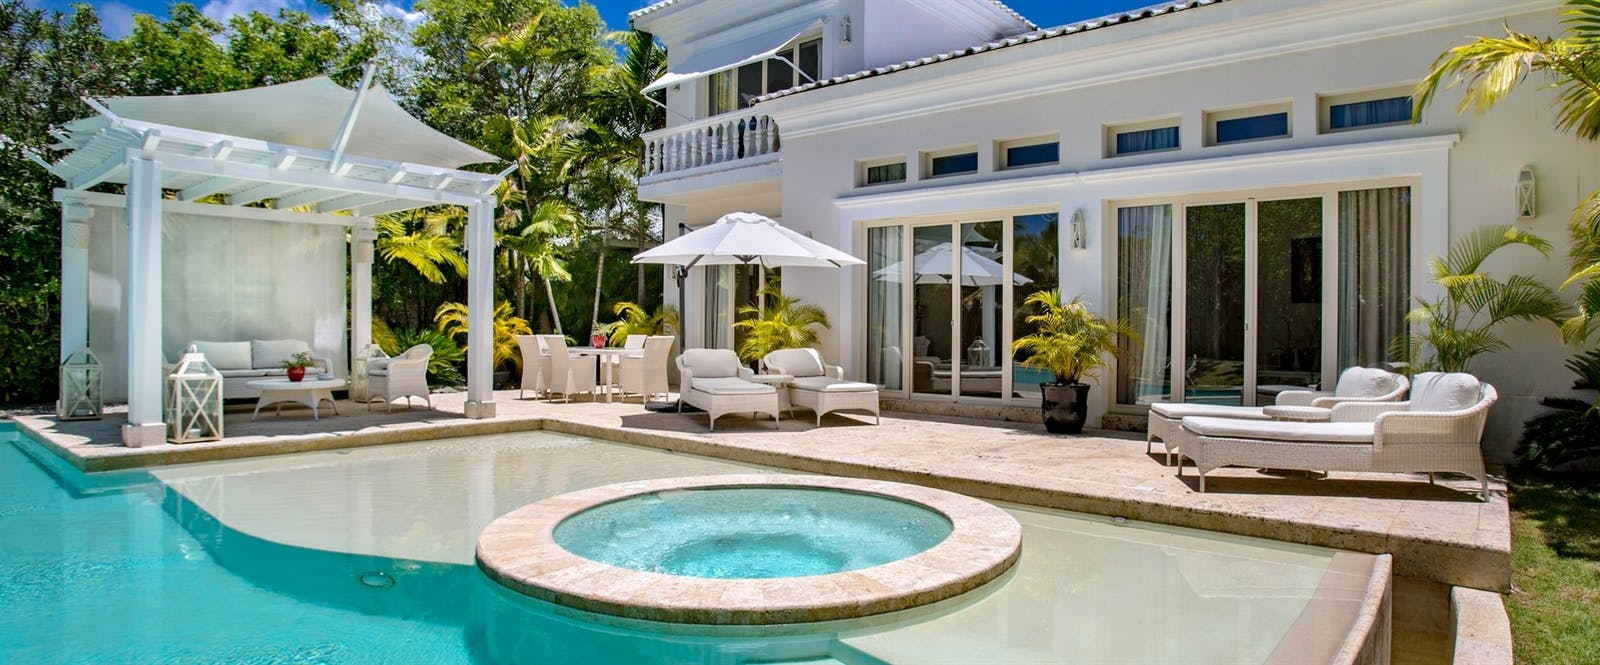 Three Bedroom Royale Villa Swimming Pool at Eden Roc at Cap Cana Boutique Suites & Beach Club, Dominican Republic